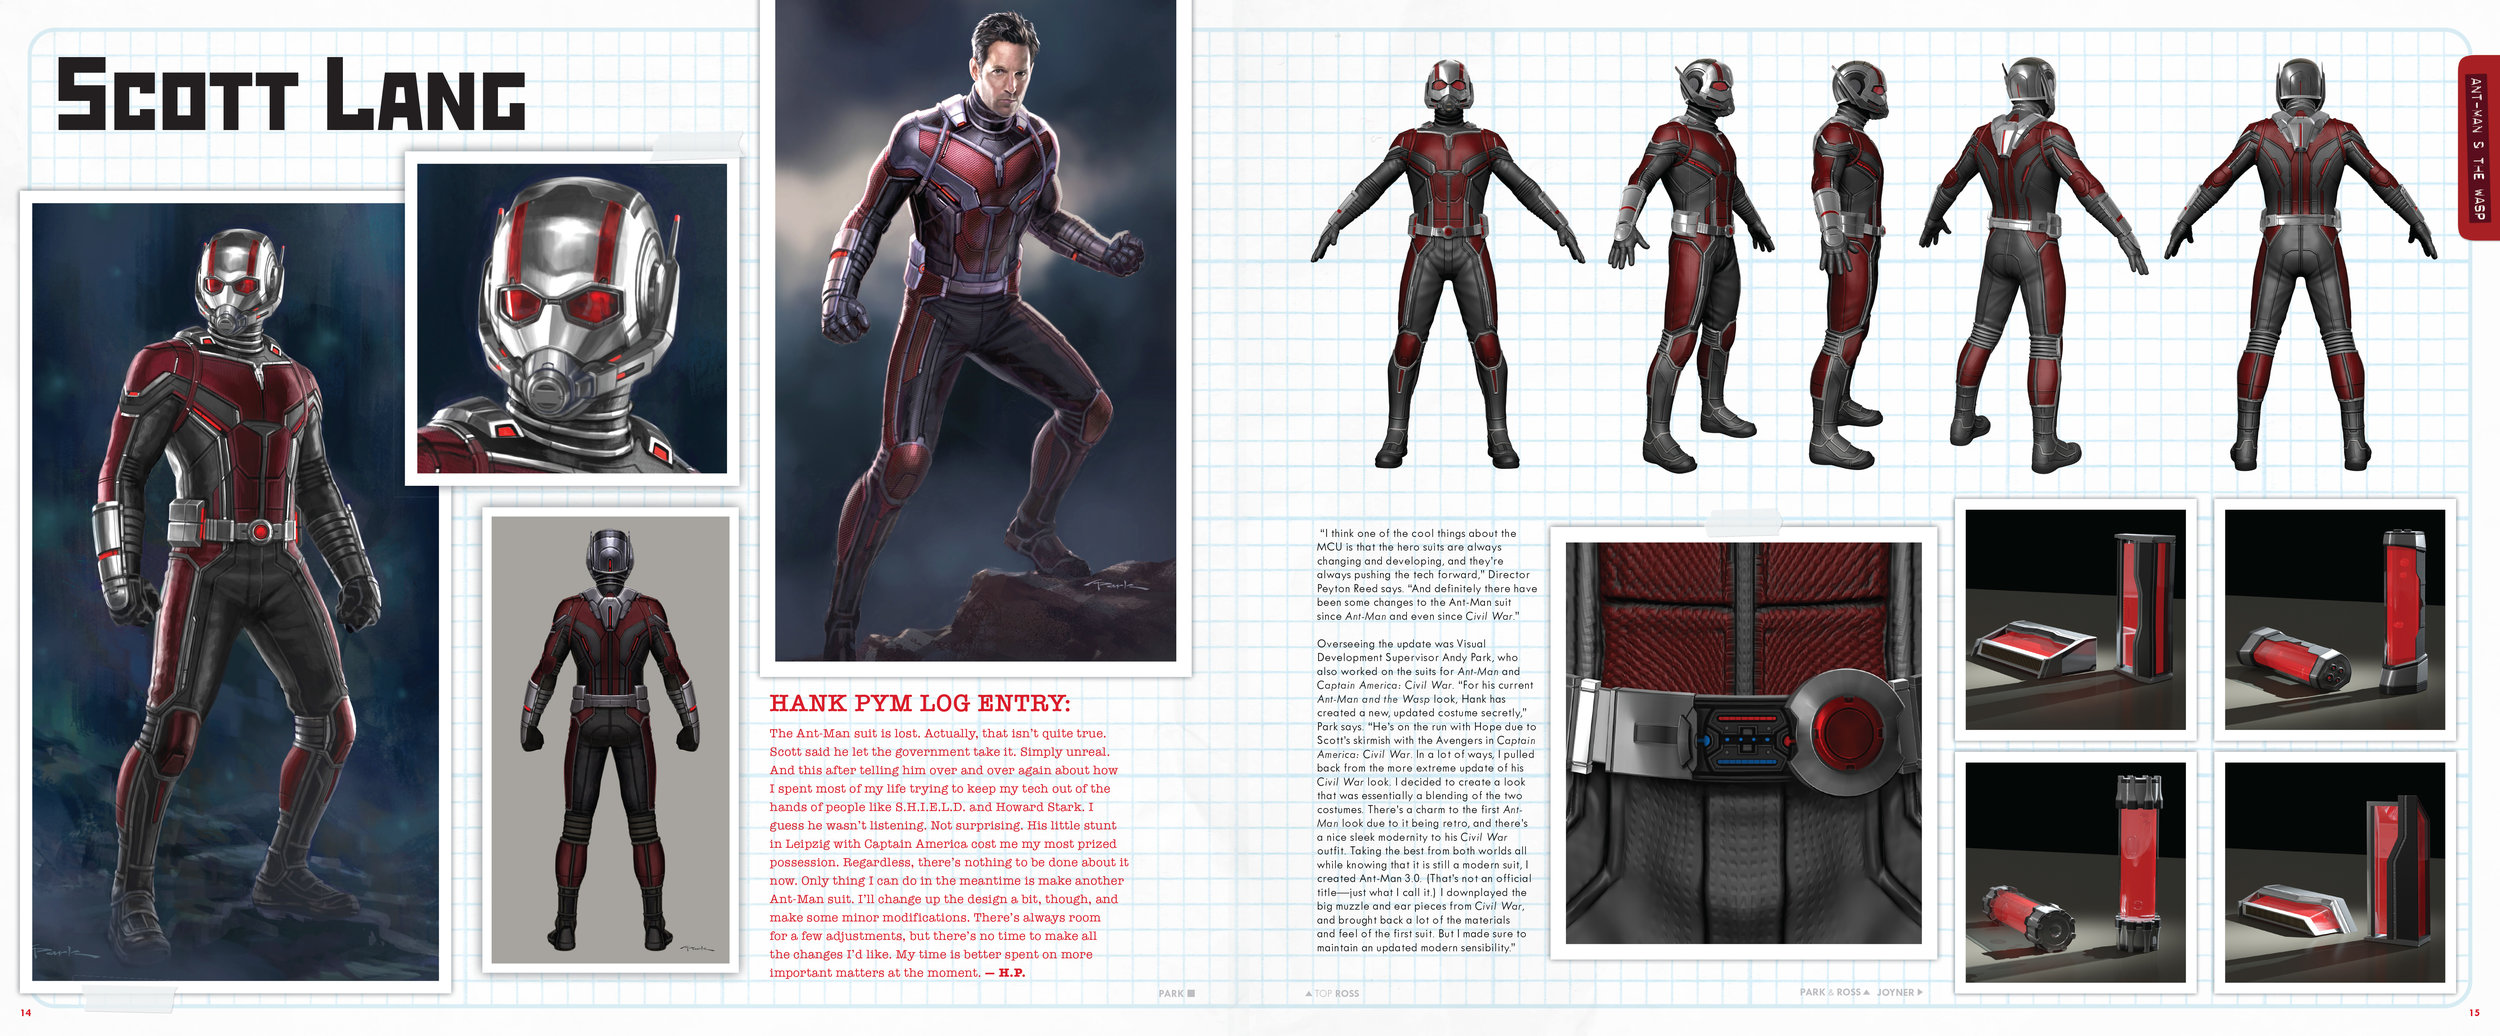 Design and layout for  The Art of Marvel Studio's Ant-Man and The Wasp . Content copyright Marvel Entertainment, 2019.